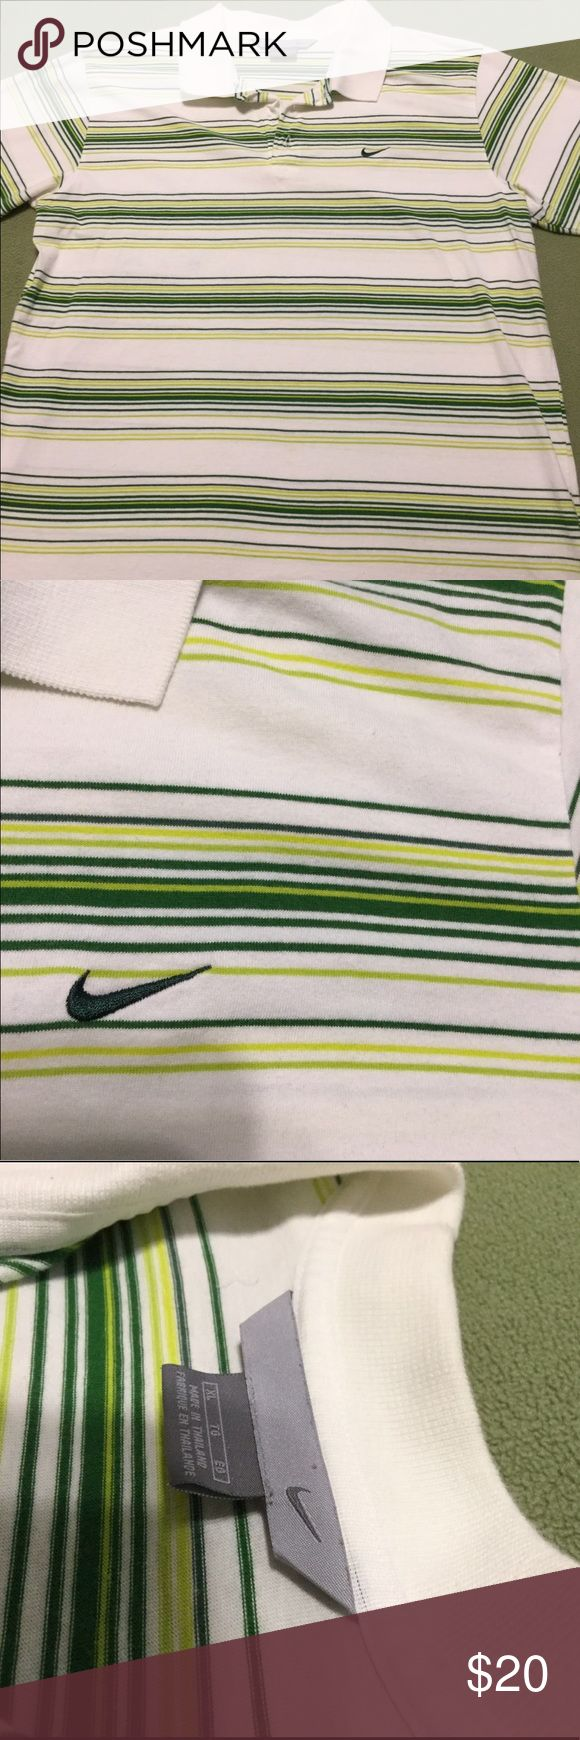 Nike Polo shirt. Green/ White. XL UEC Nike Polo shirt. Green/ White. XL UEC Nike Shirts Polos